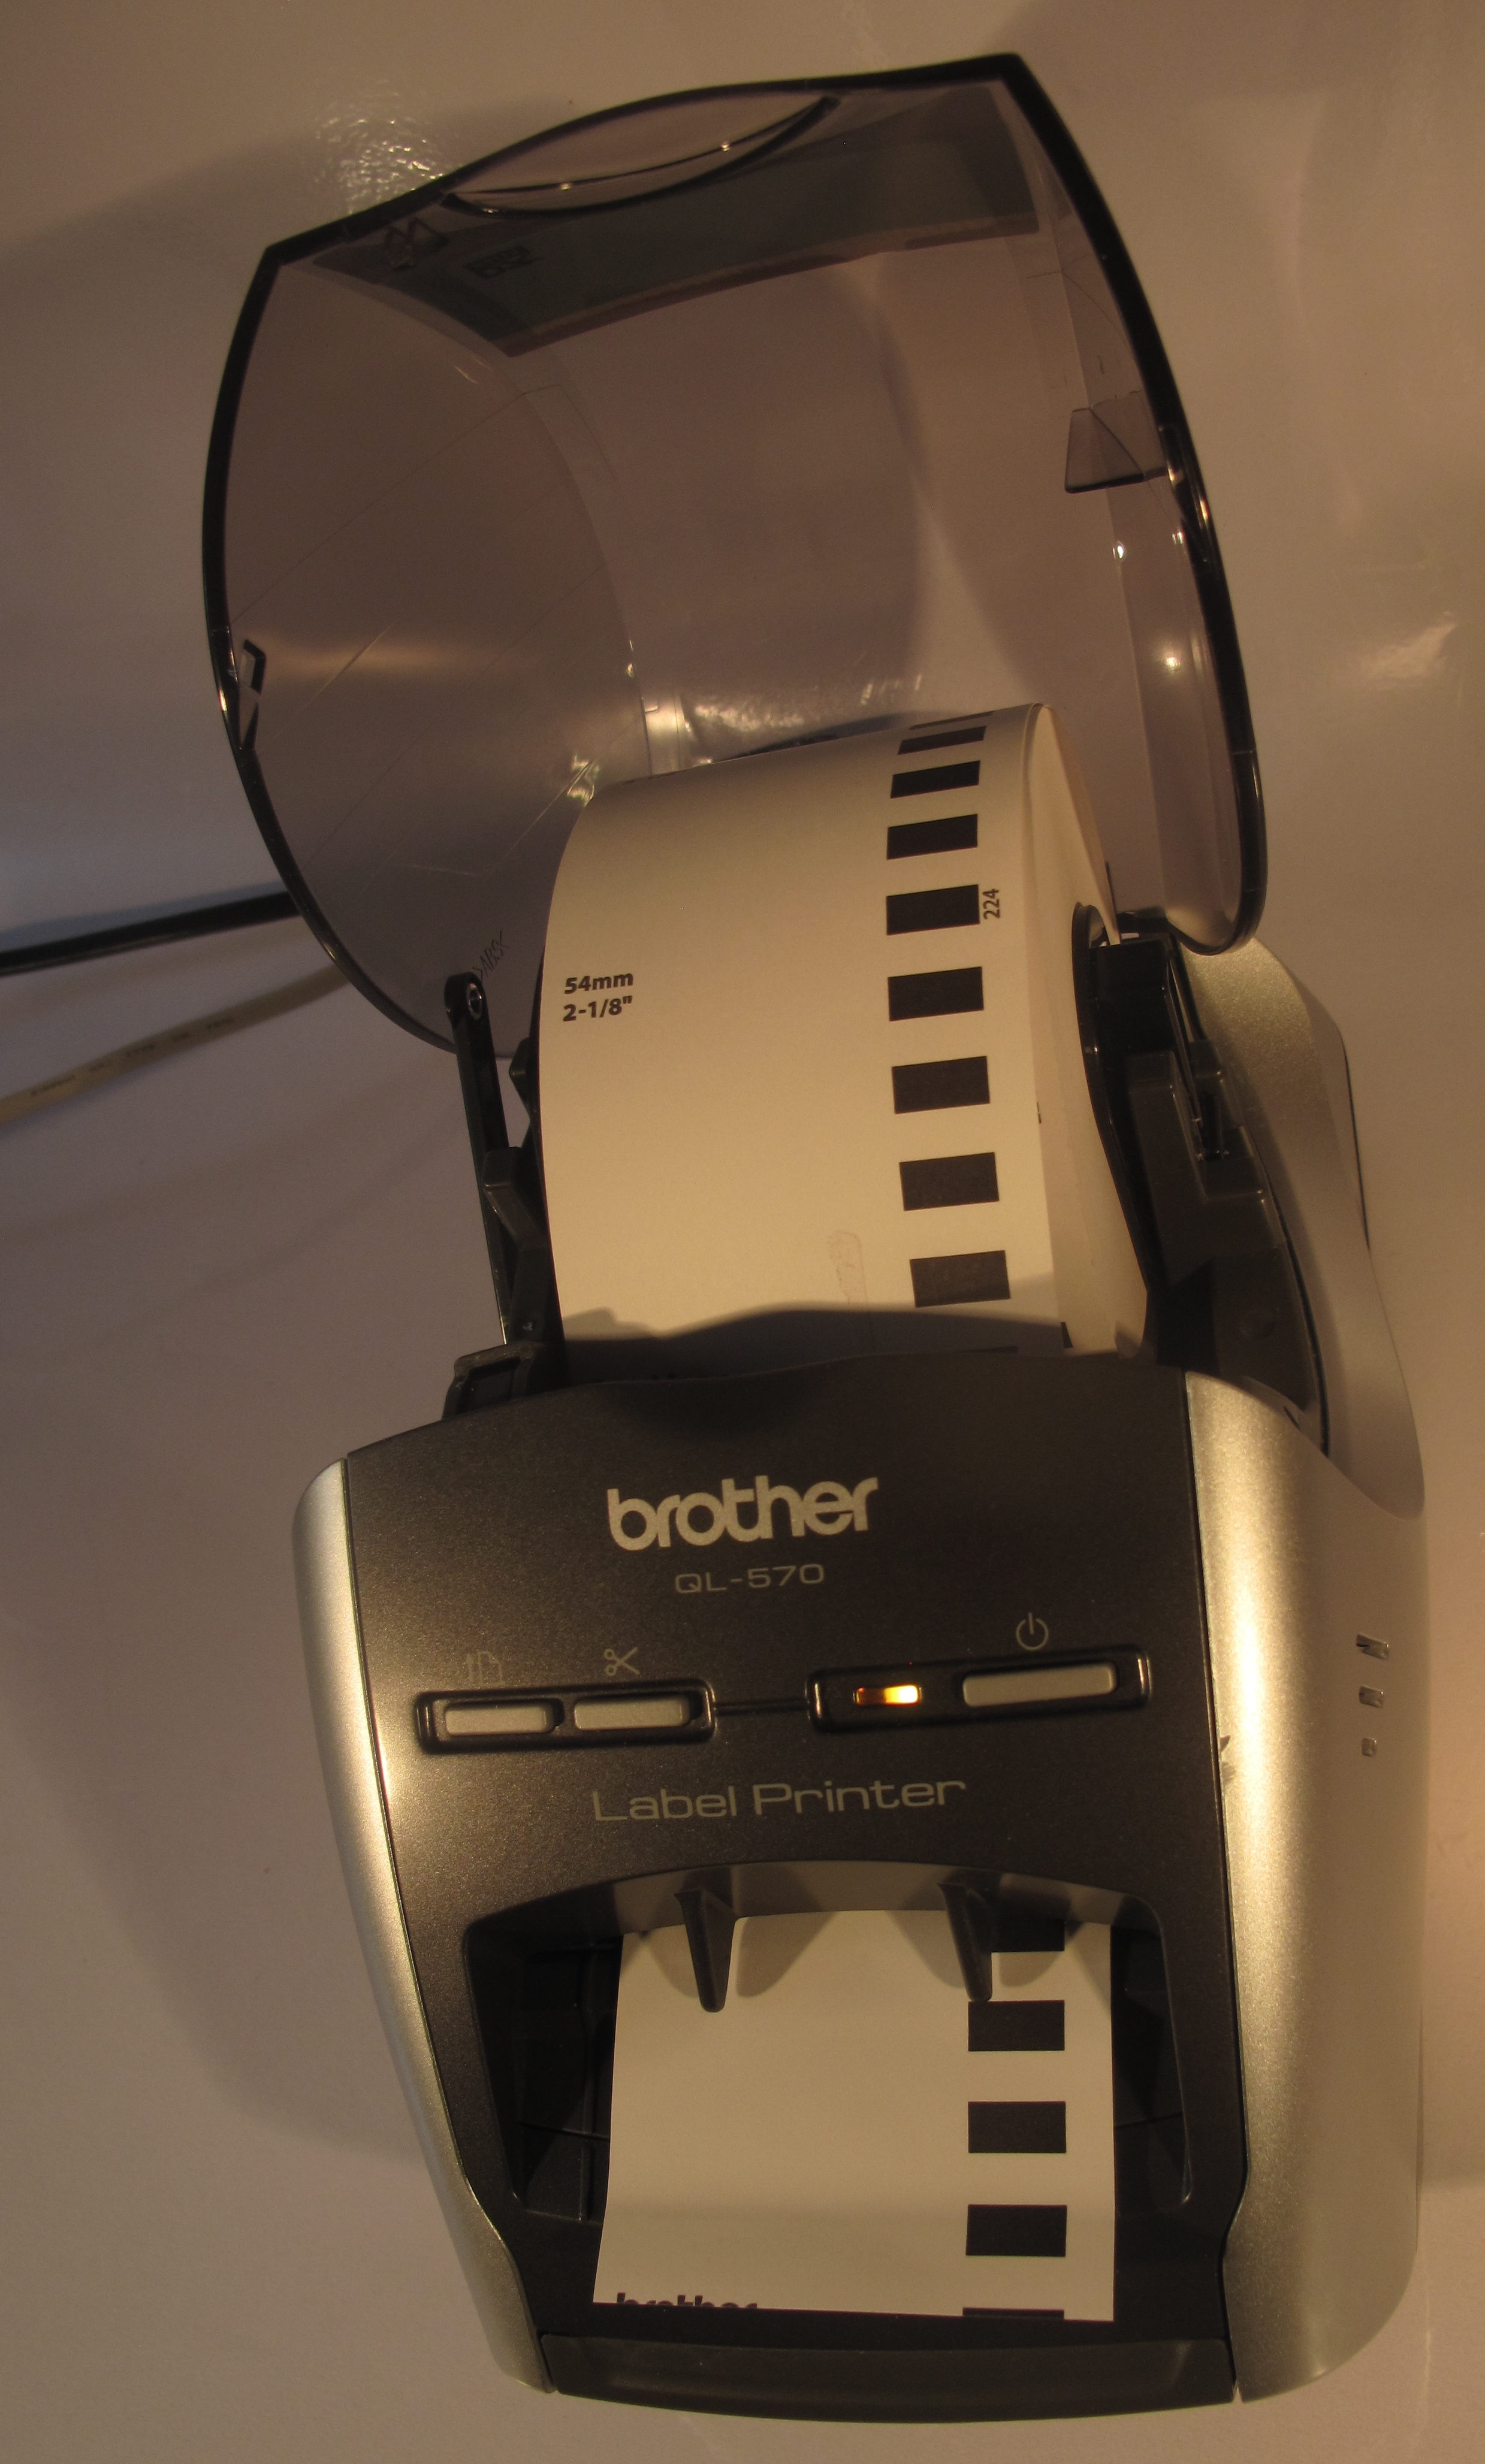 Brother QL-570 thermal label printer tape path shown